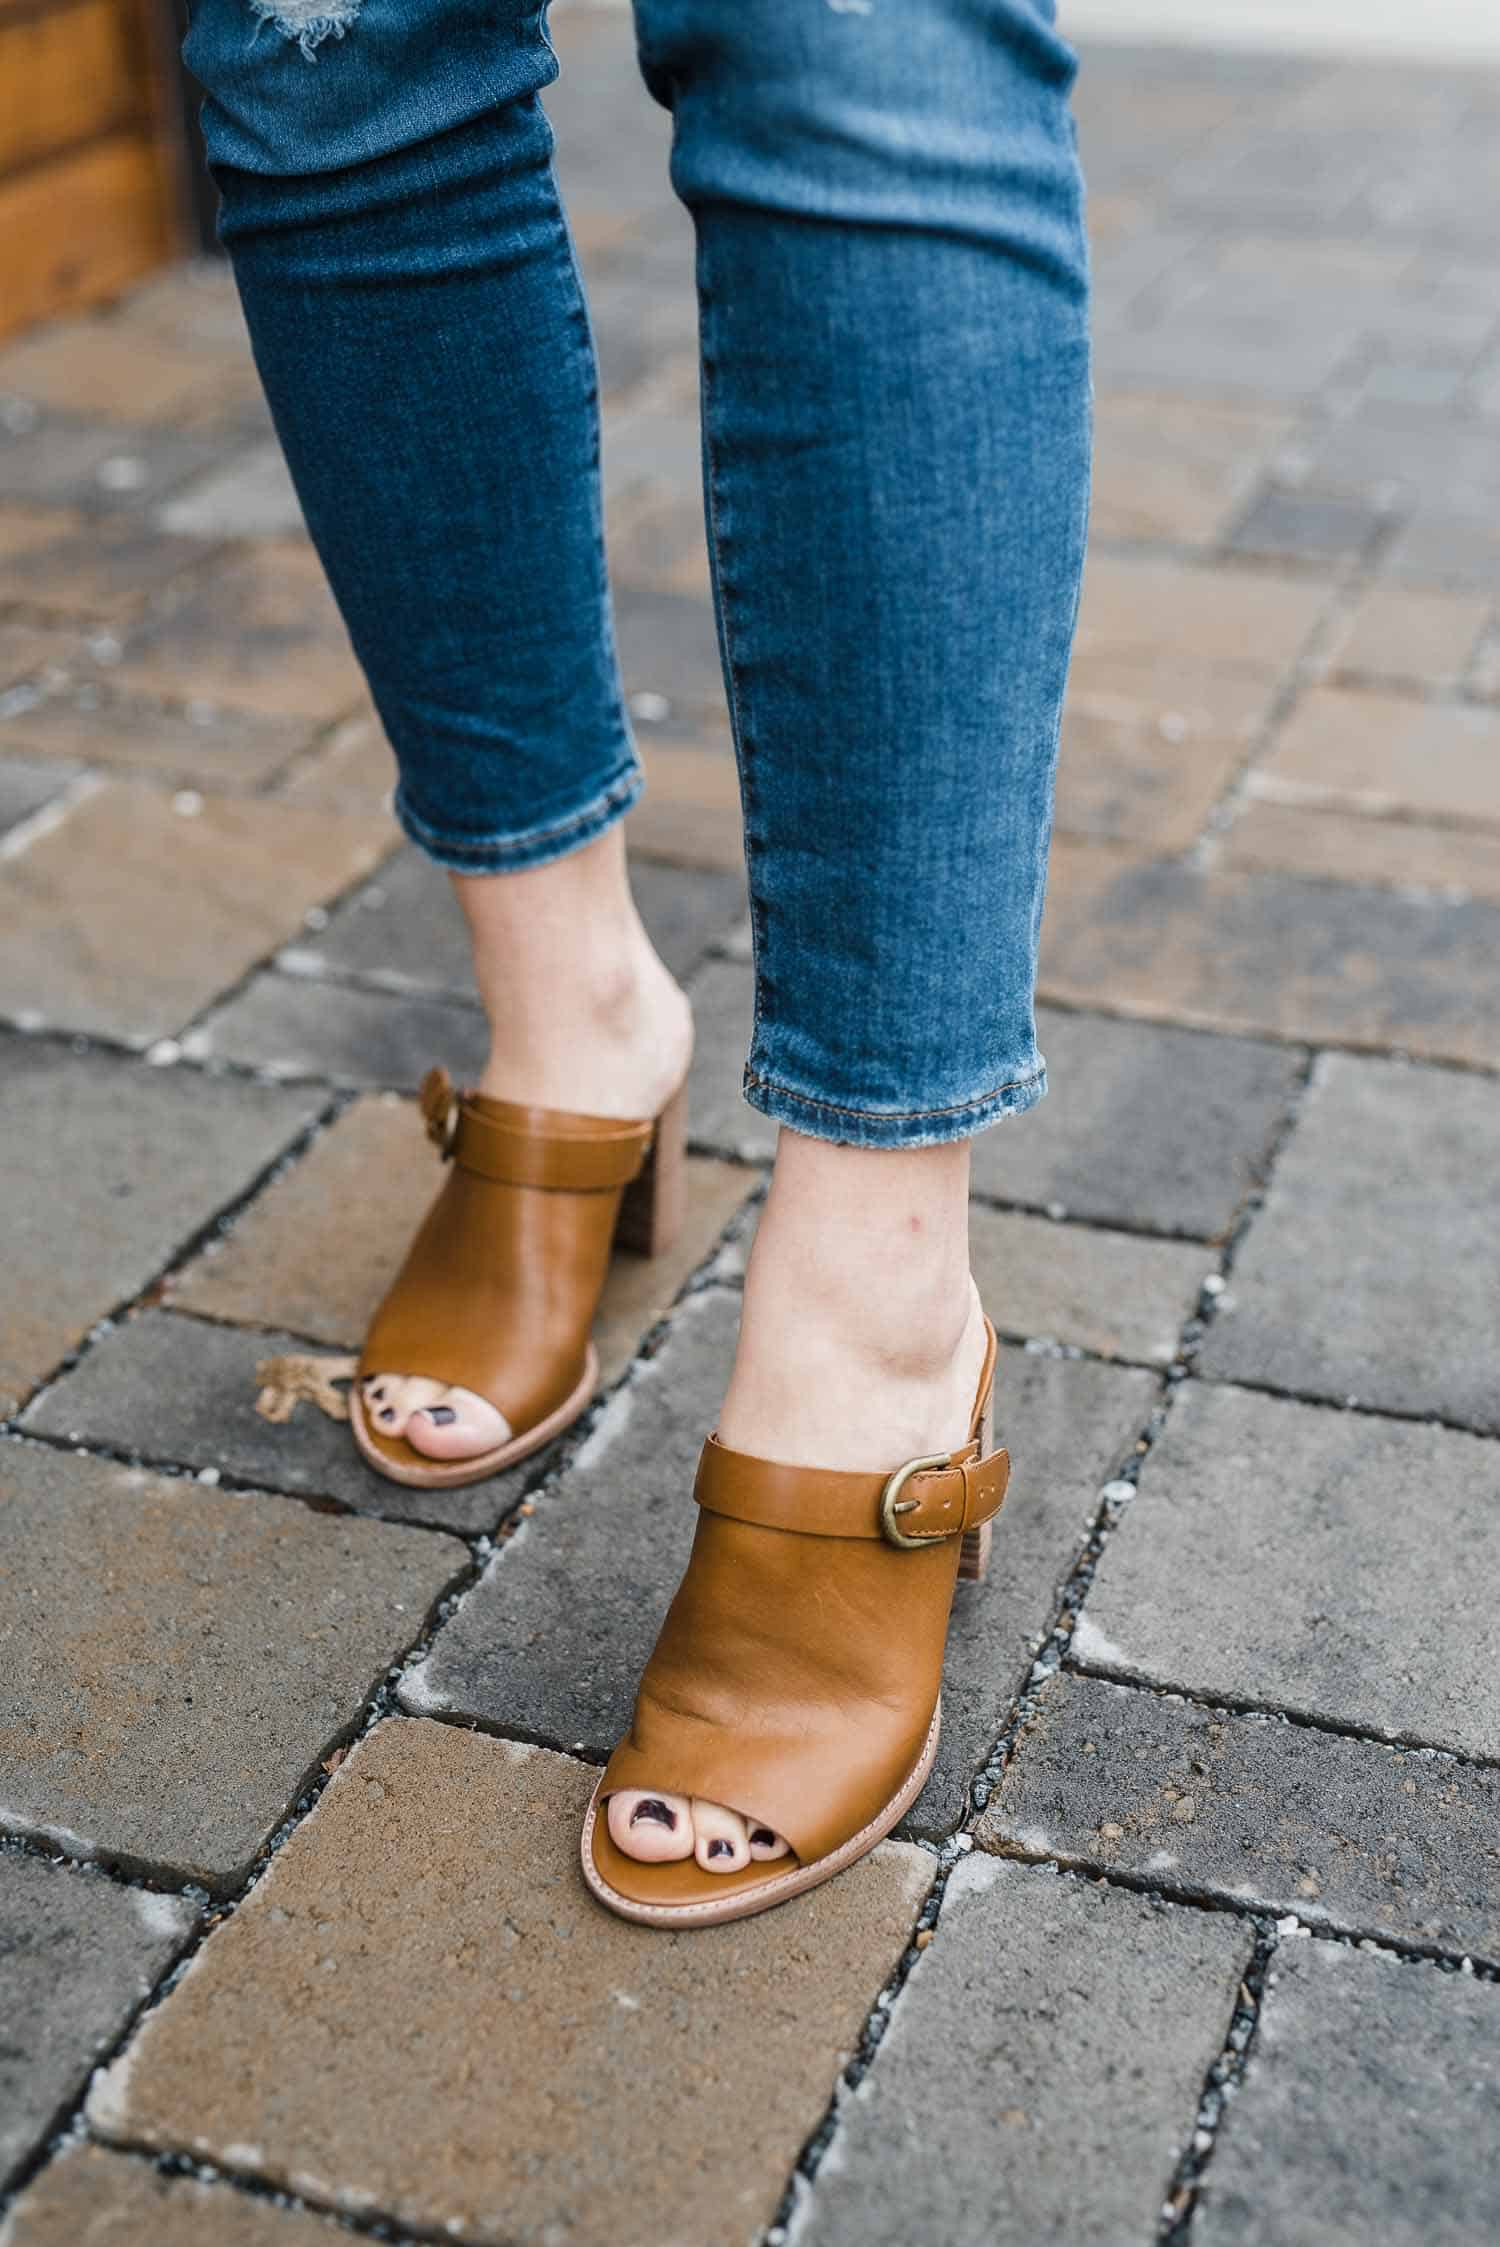 Madewell Mules, The Riley Convertible Slingback Mules